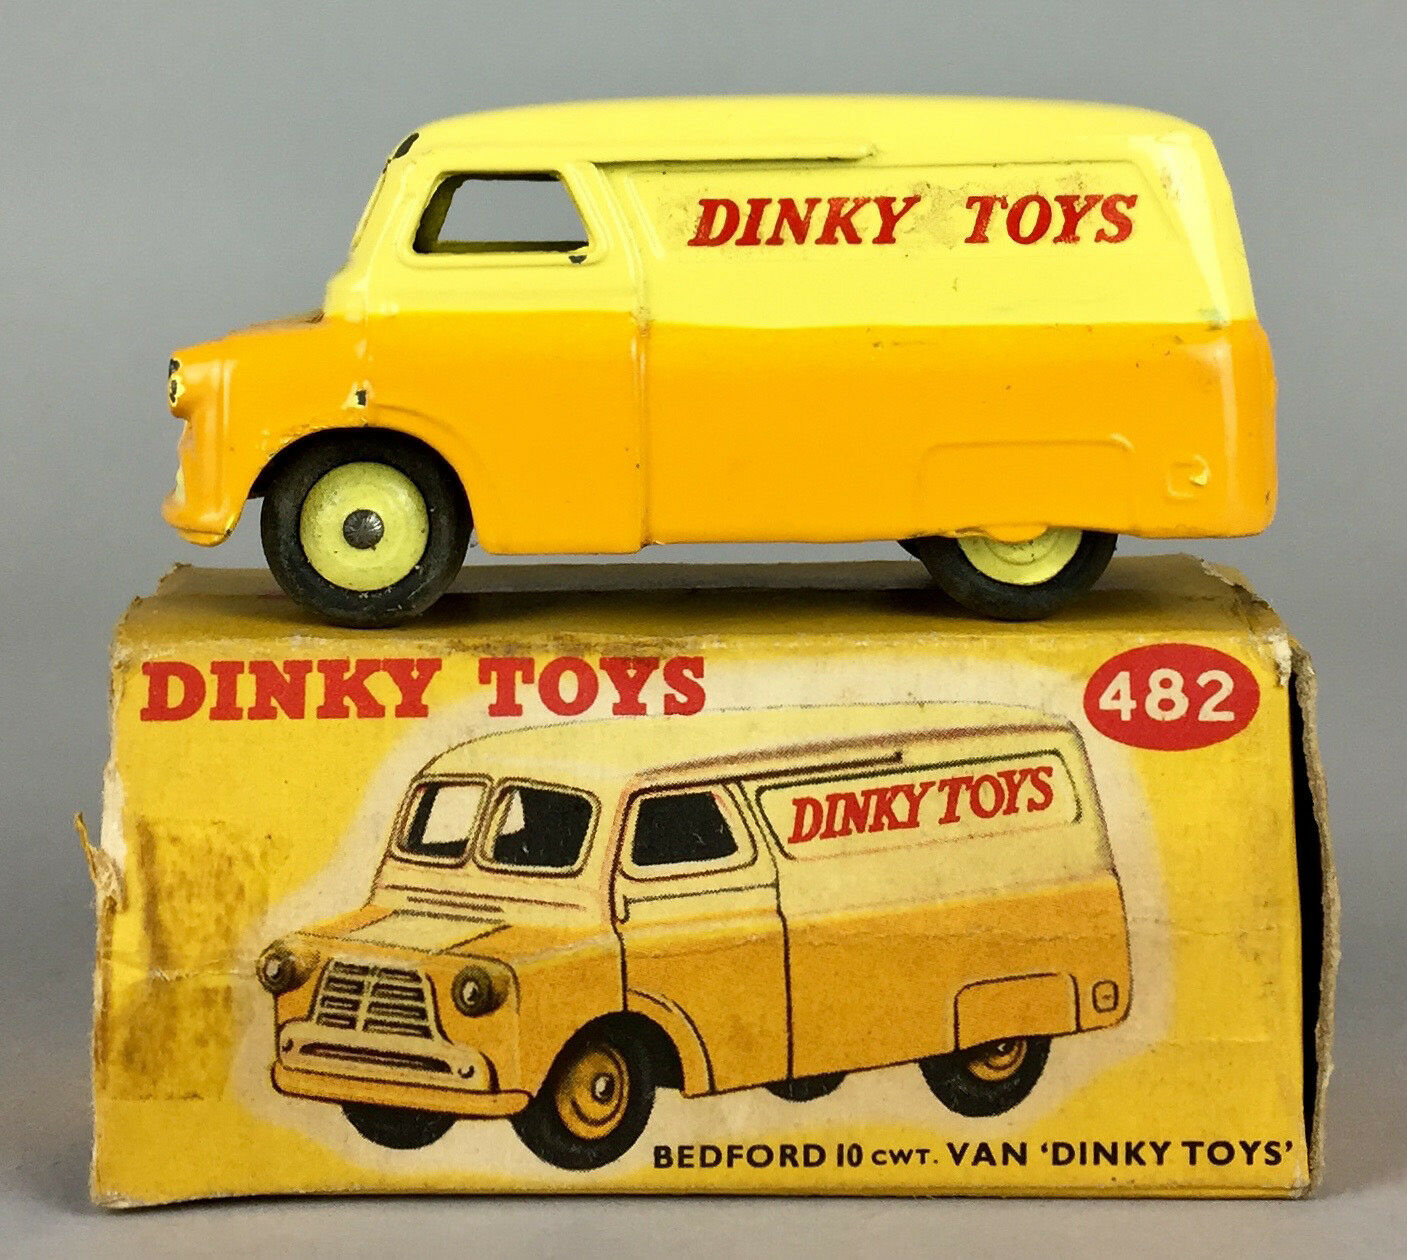 Toys Modèle Dinky Tone 10cwt No 2 Collectionneurs Bedford Voiture XiZOPkTlwu